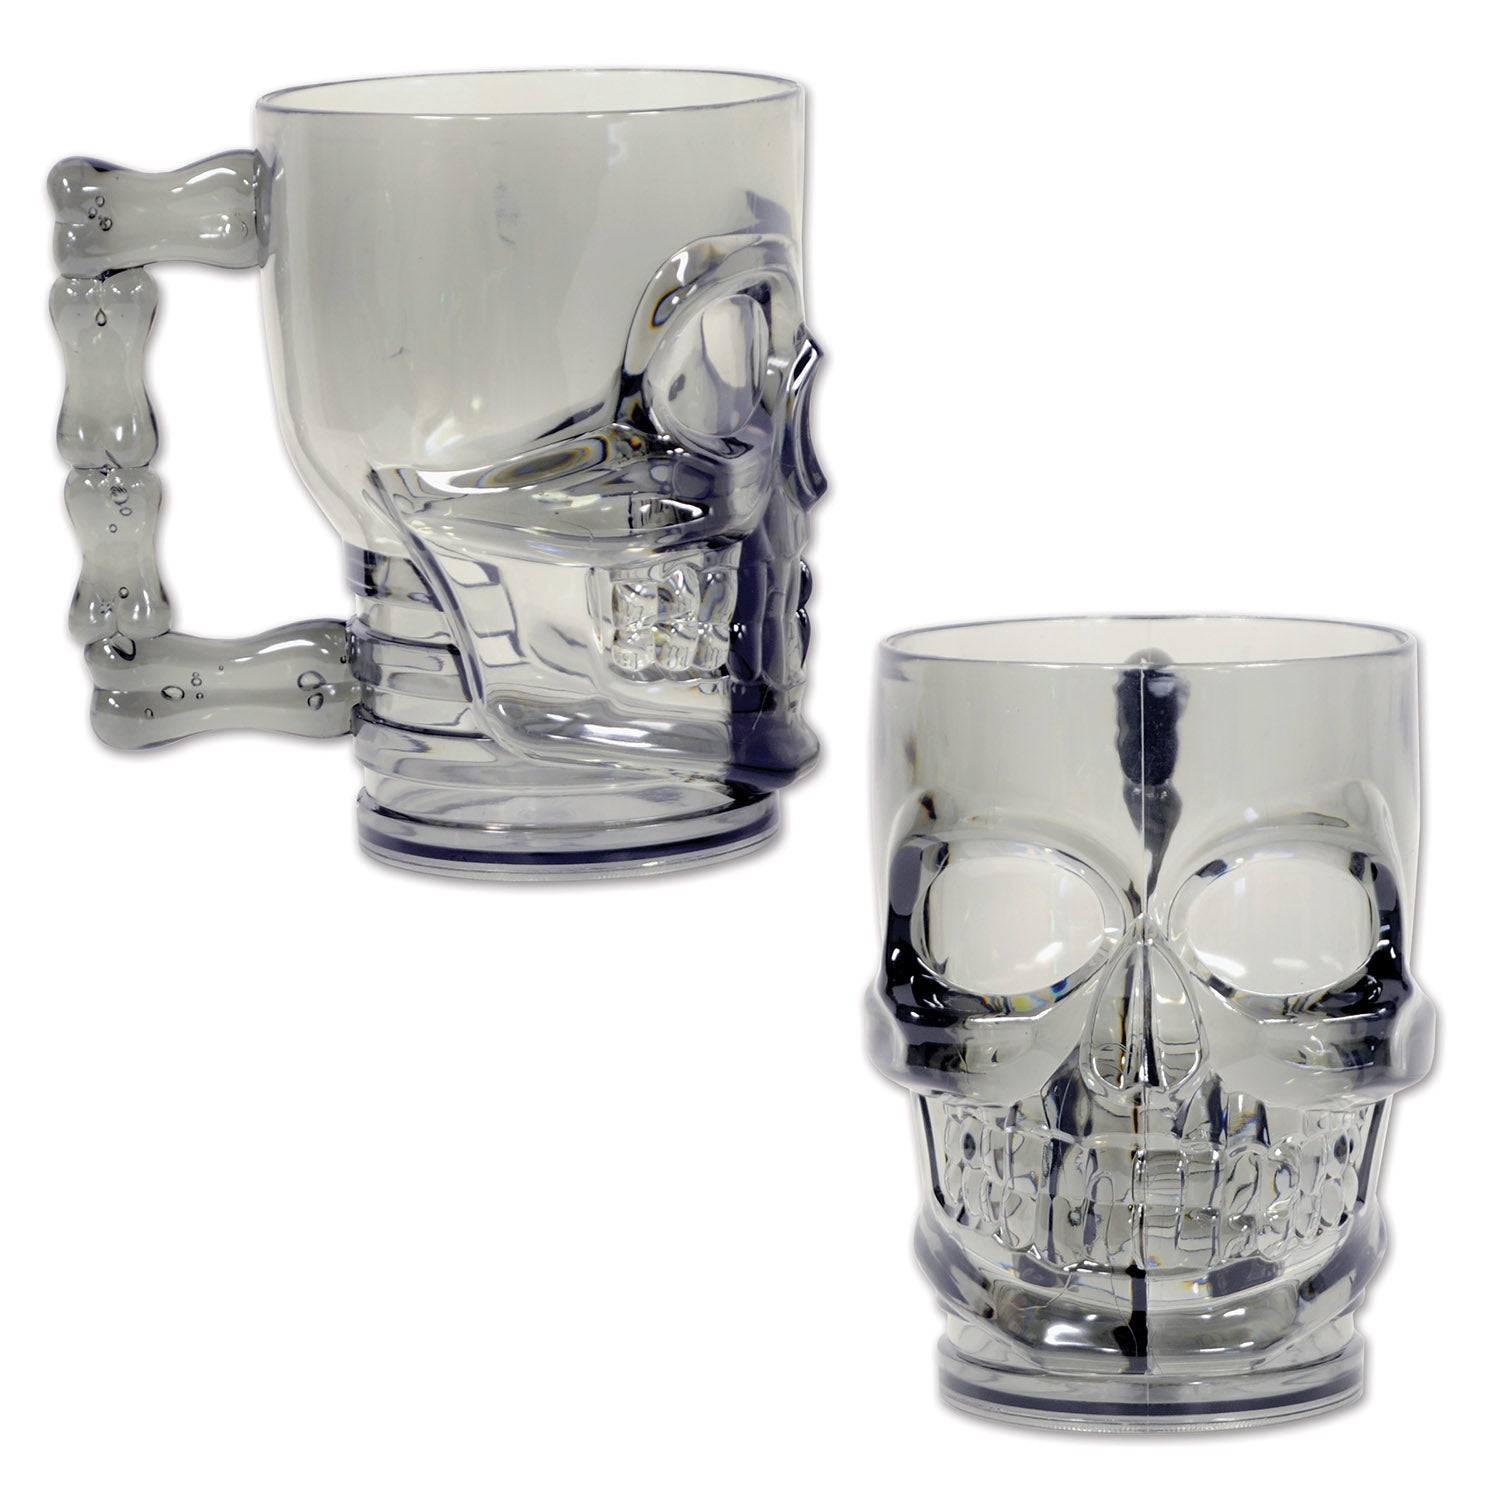 Plastic Skull Mug by Beistle - Pirate Theme Decorations